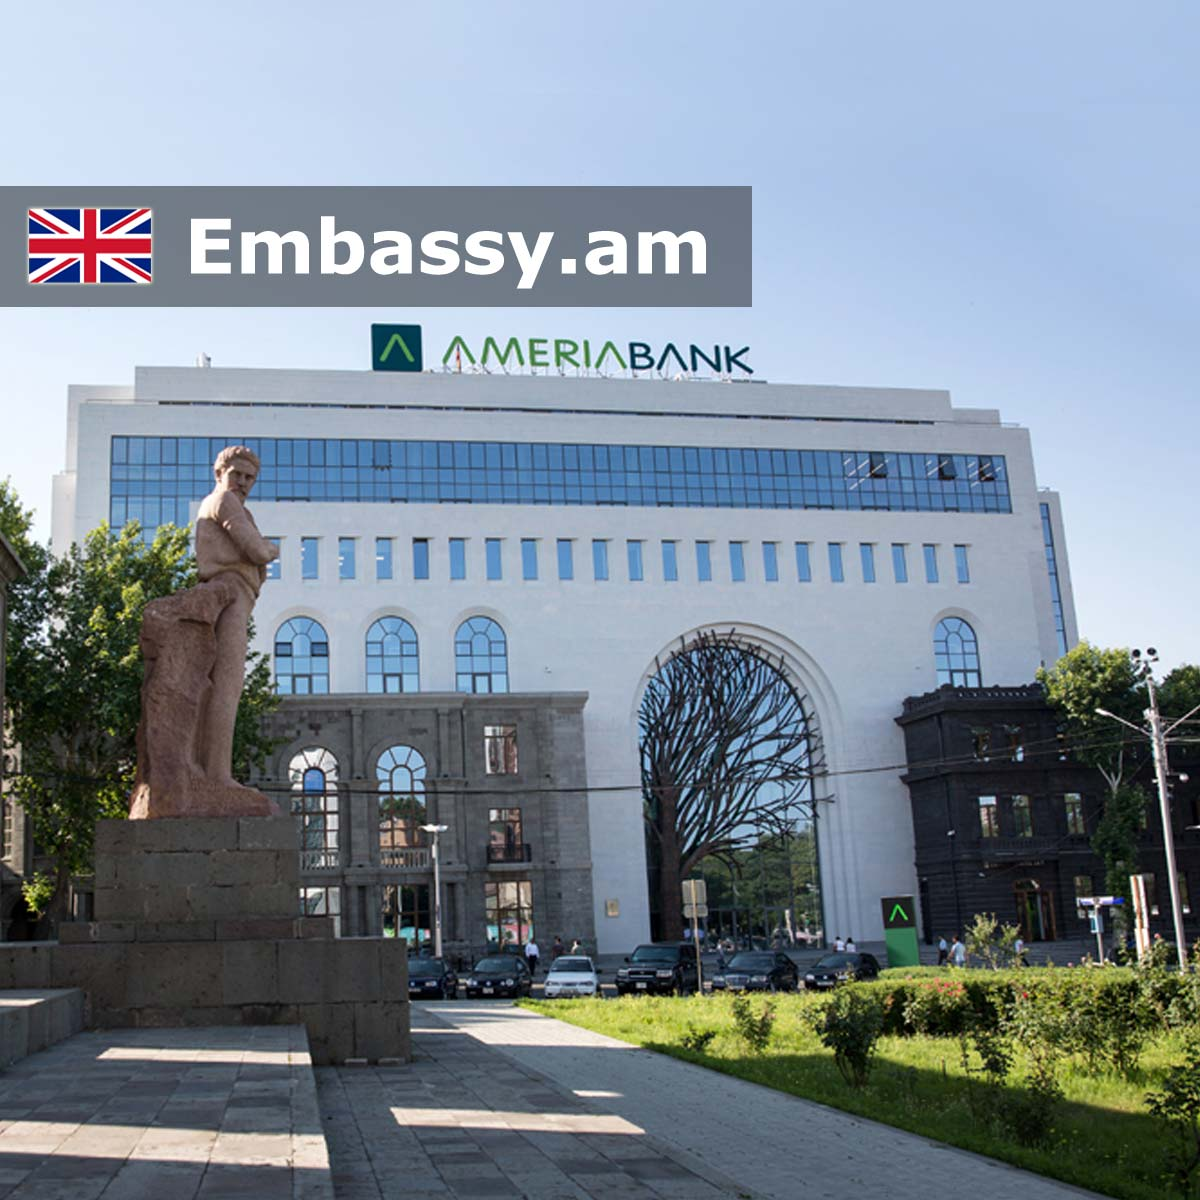 Embassy of the United Kingdom of Great Britain and Northern Ireland     Embassy of the United Kingdom of Great Britain and Northern Ireland in  Armenia